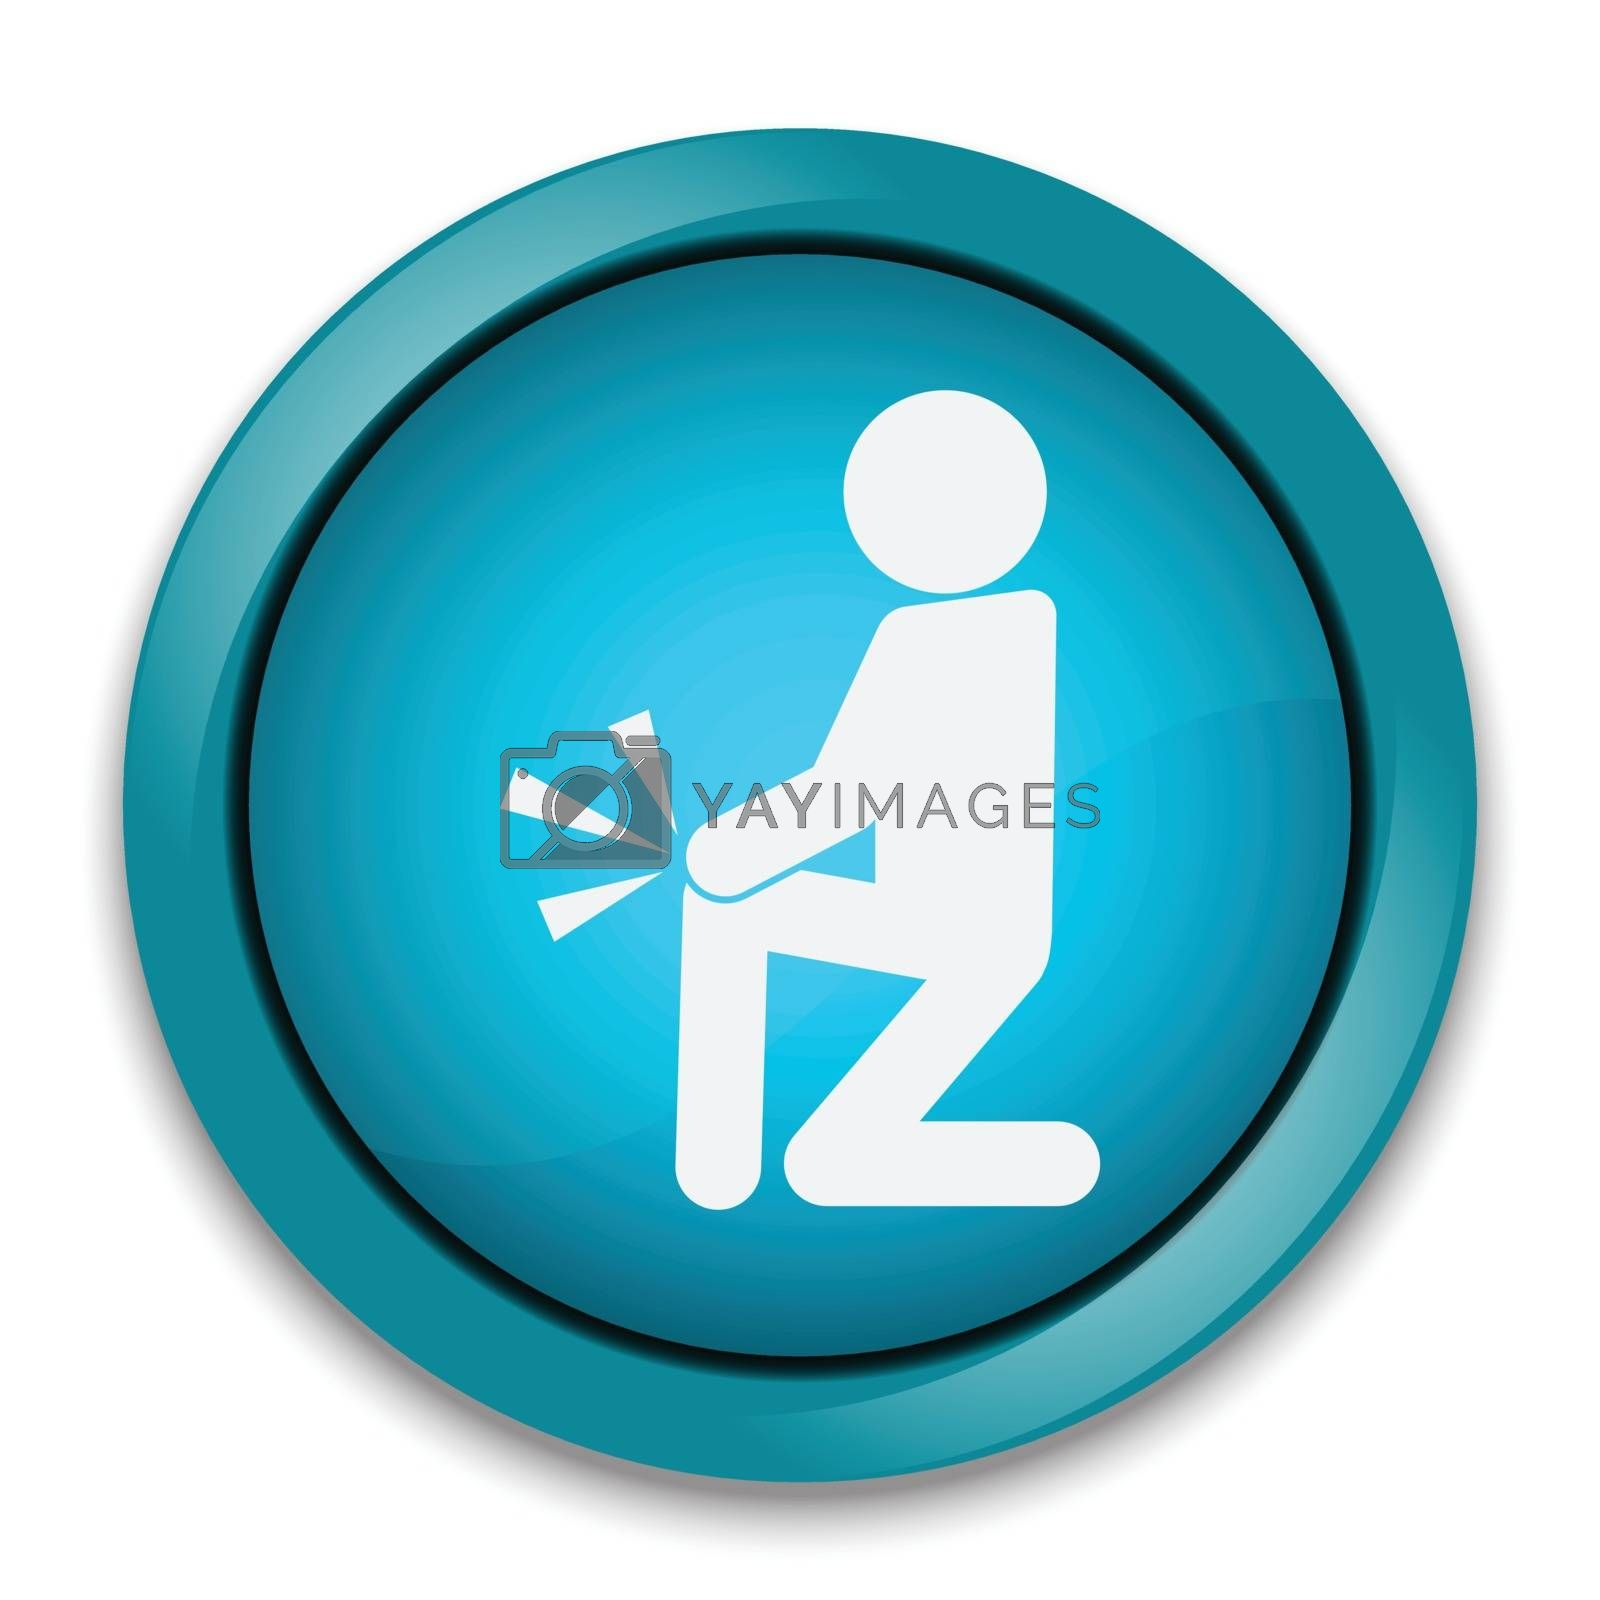 Injury of the knee pain, Injury of the leg pain icon